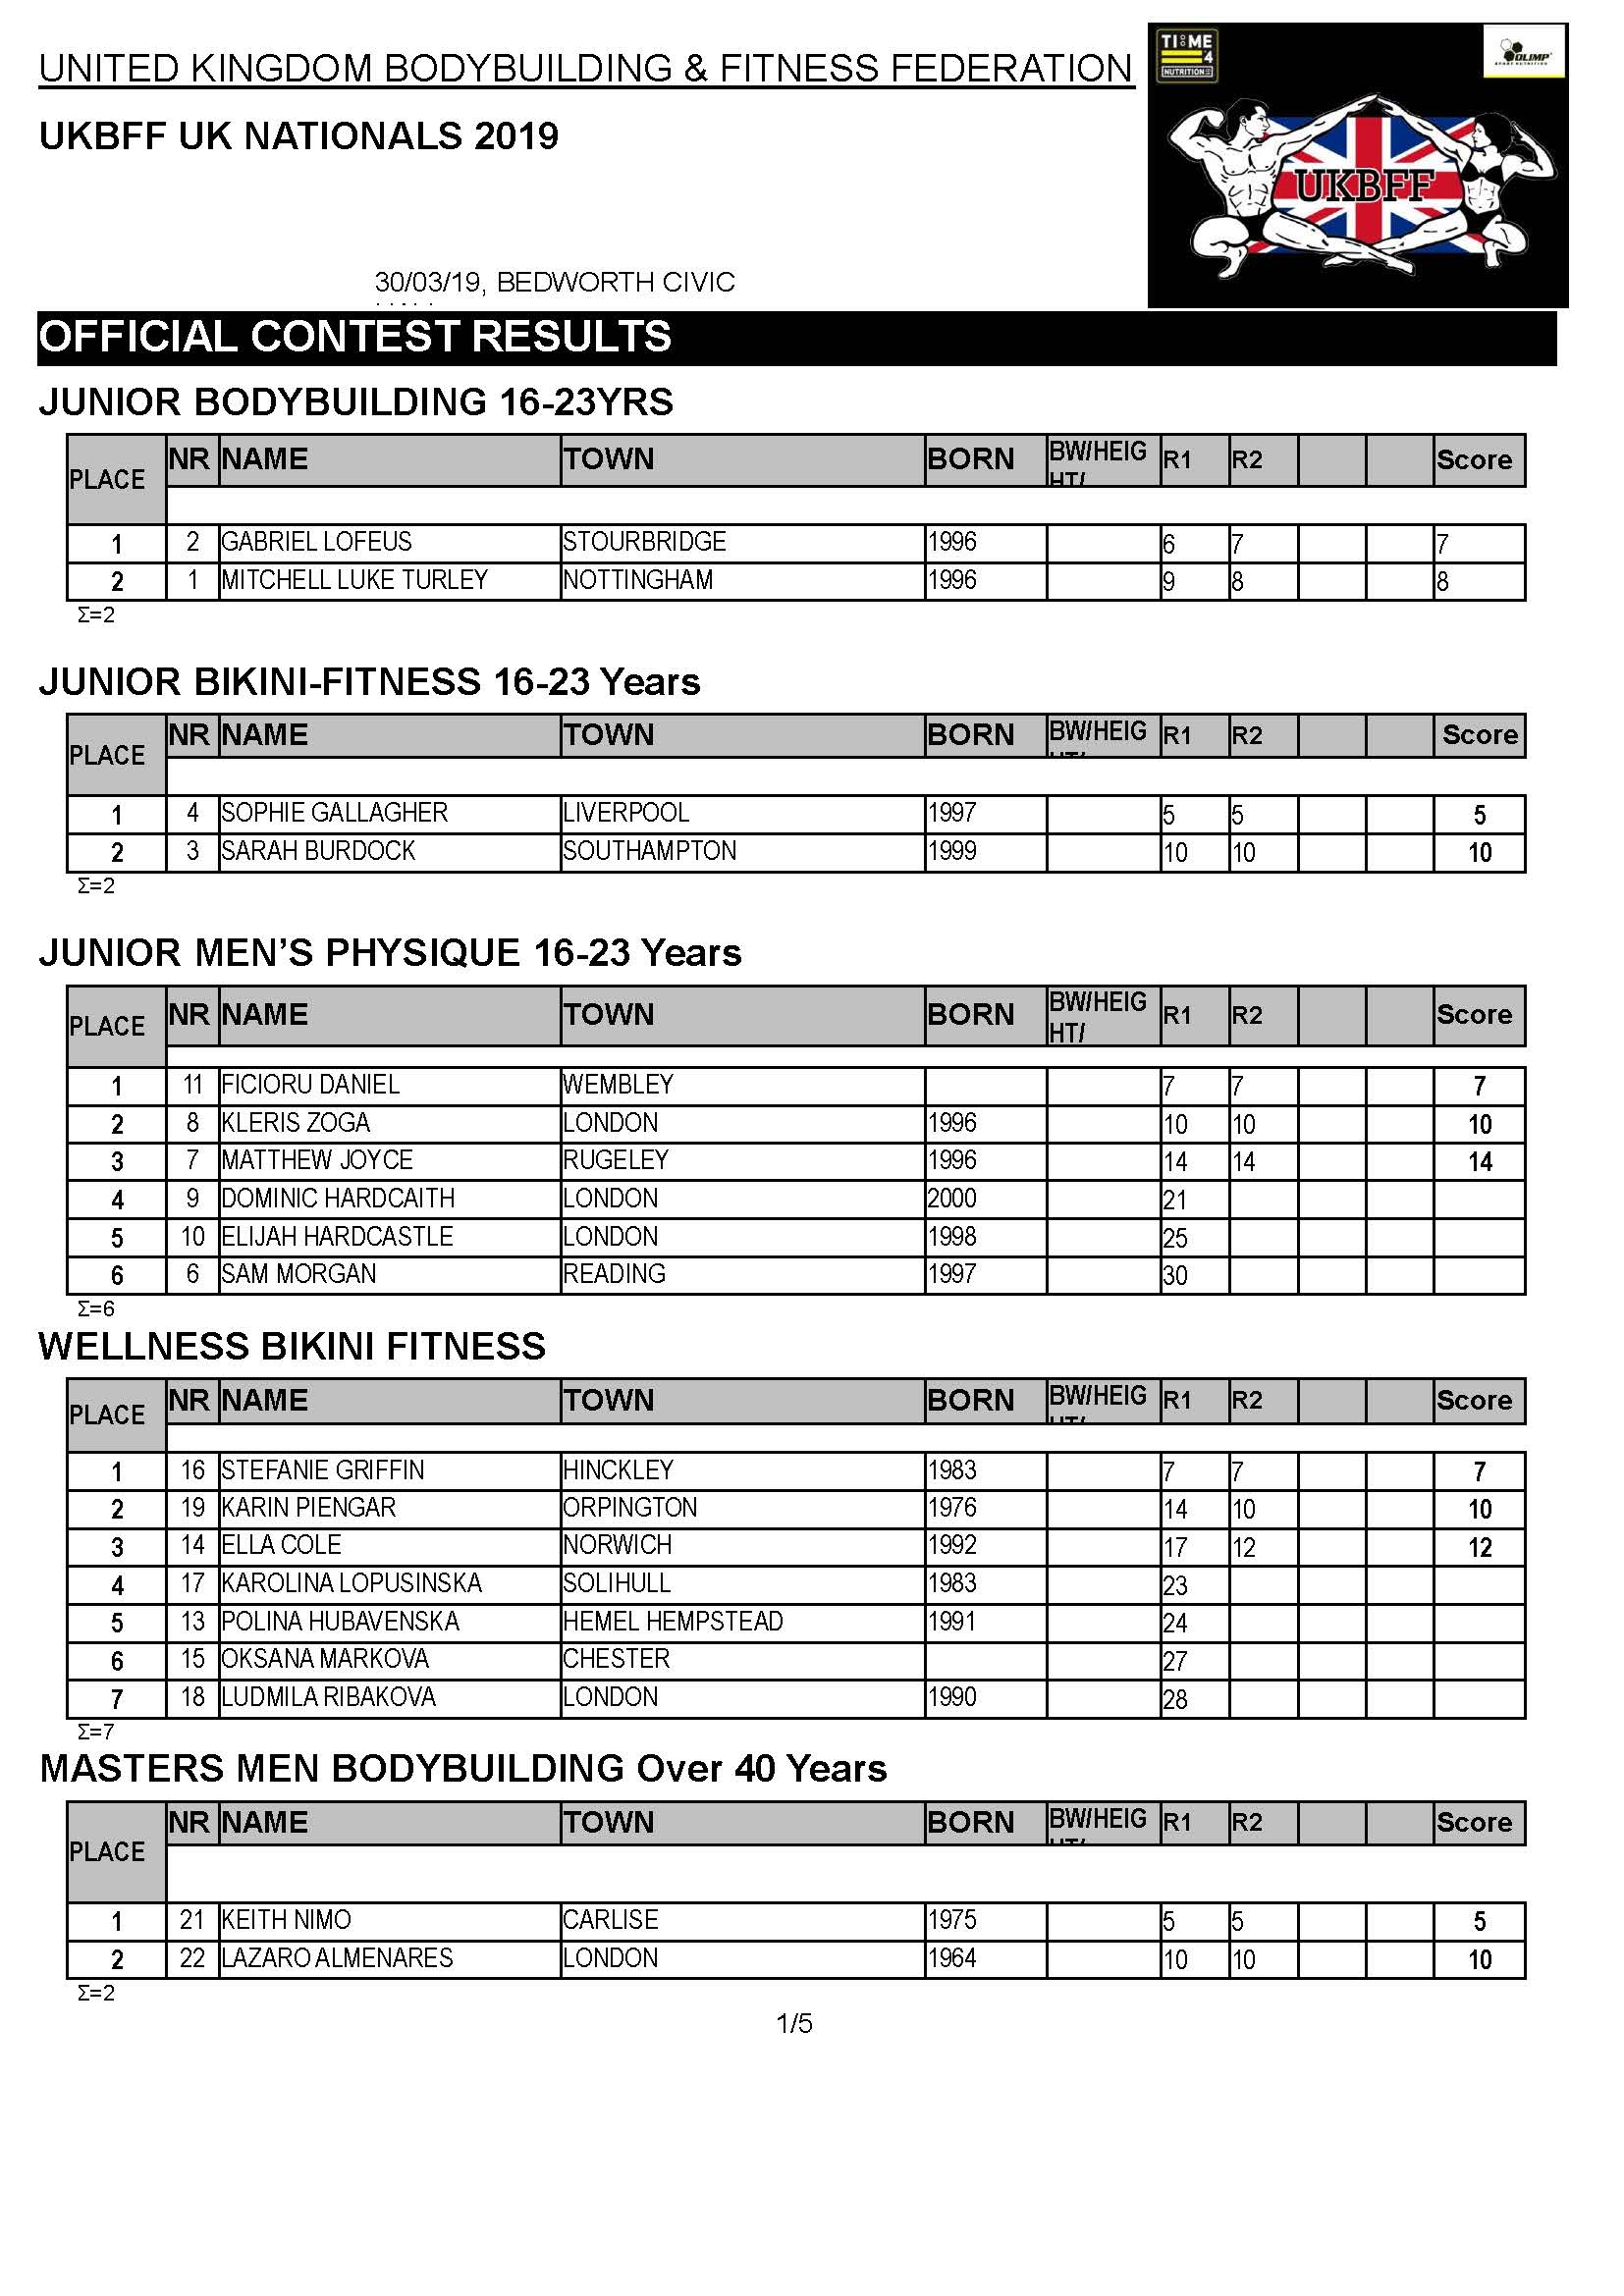 2019 UK NATIONALS RESULTS_Page_1.jpg